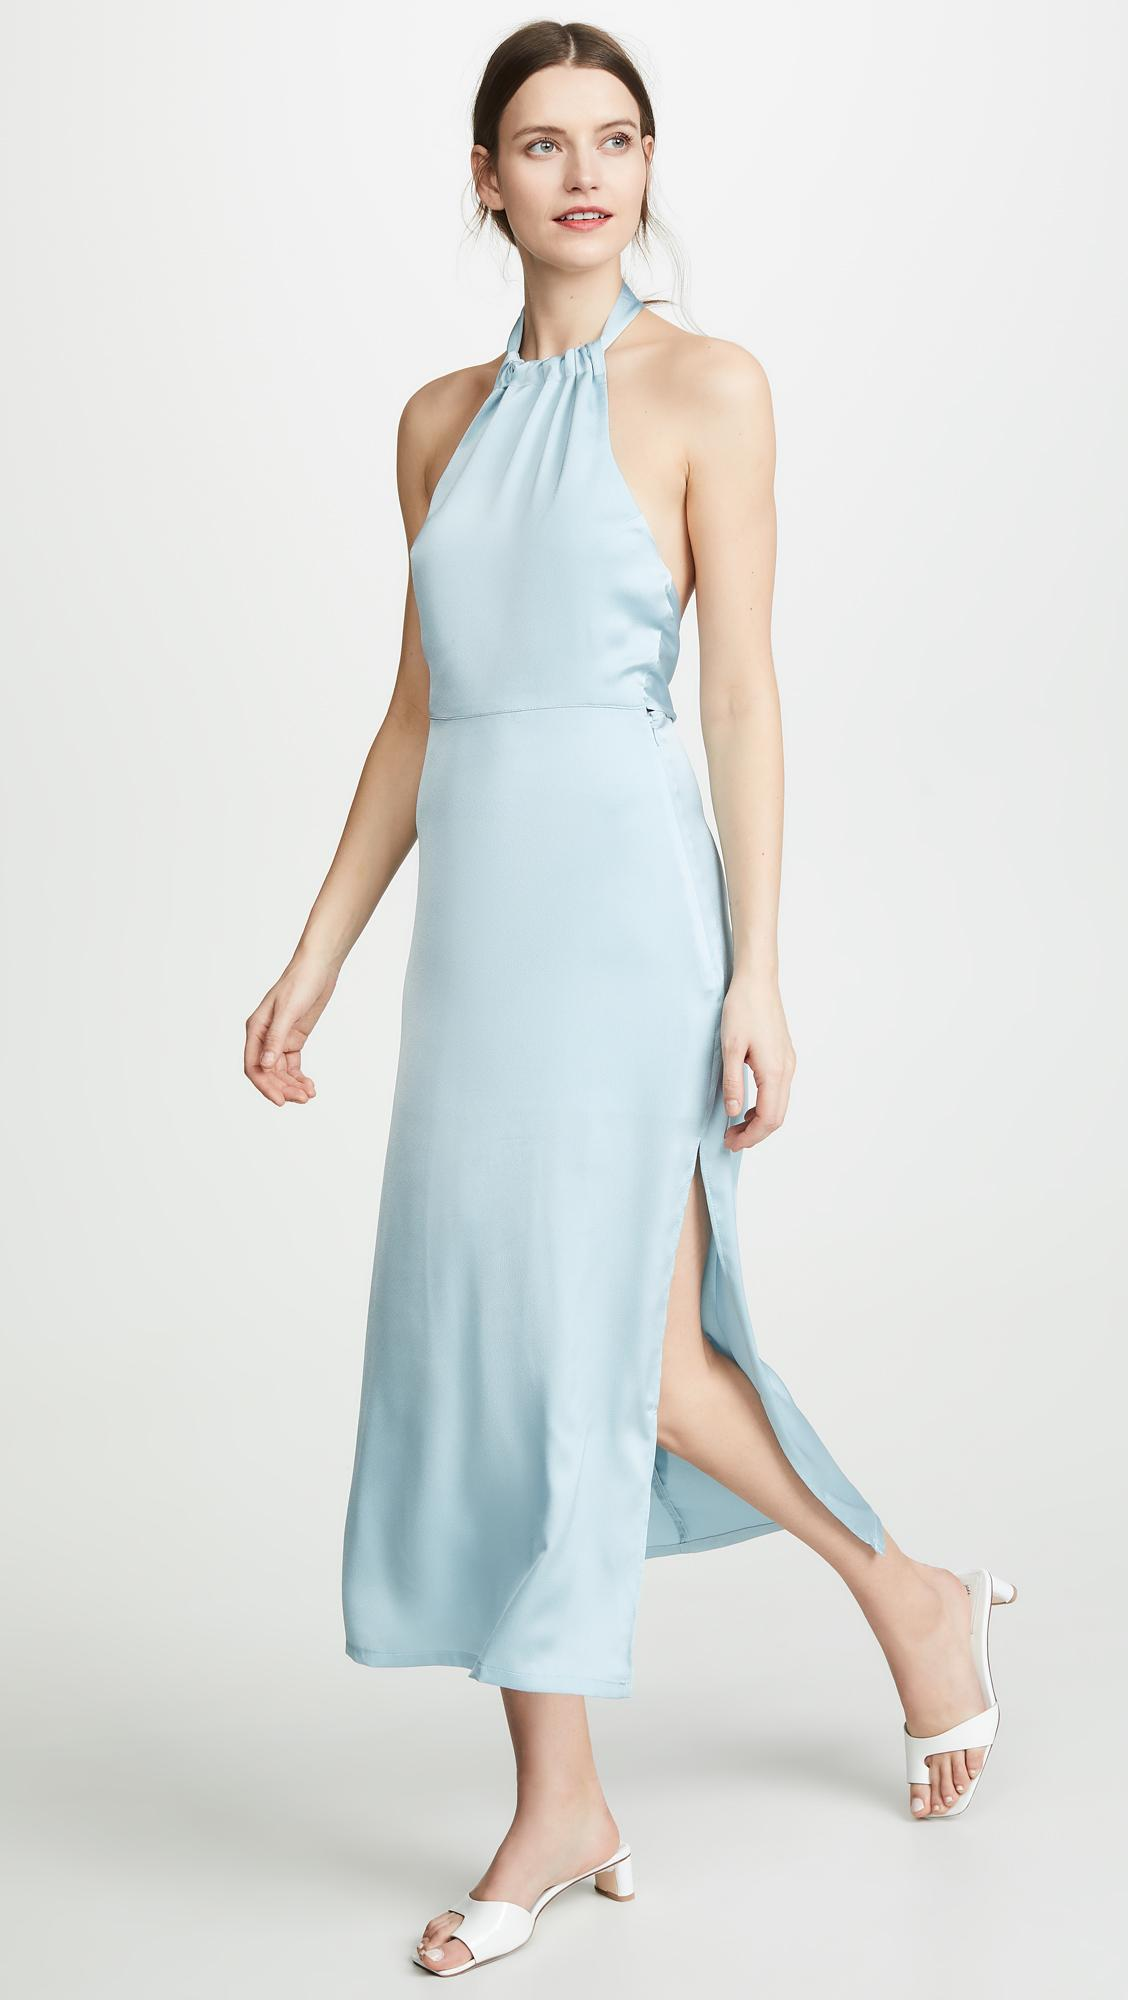 070f3fb9a51284 Lyst - VEDA Naples Dress in Blue